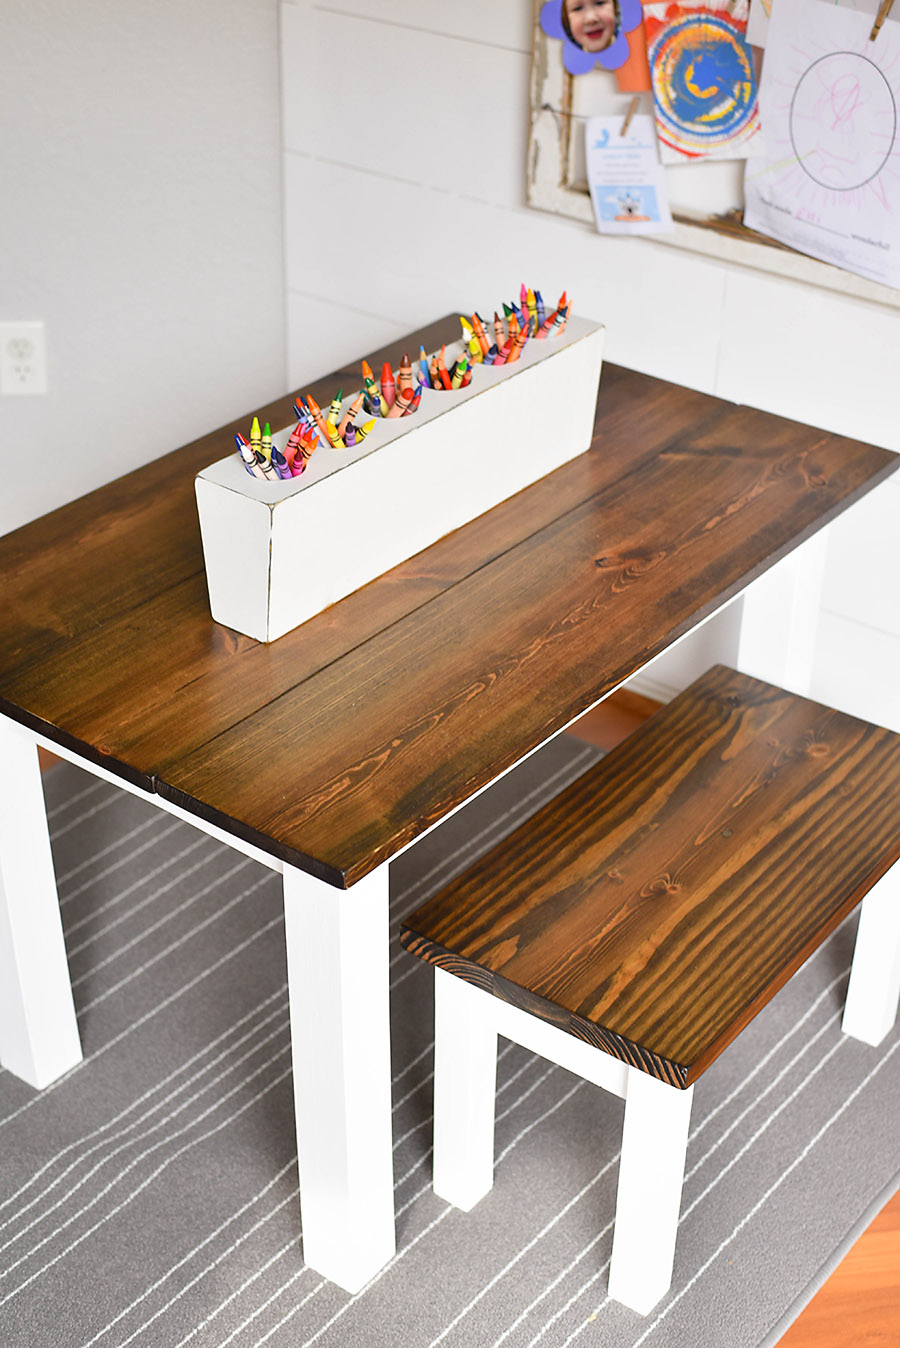 How To Make A Diy Farmhouse Kid S Table Our Handcrafted Life